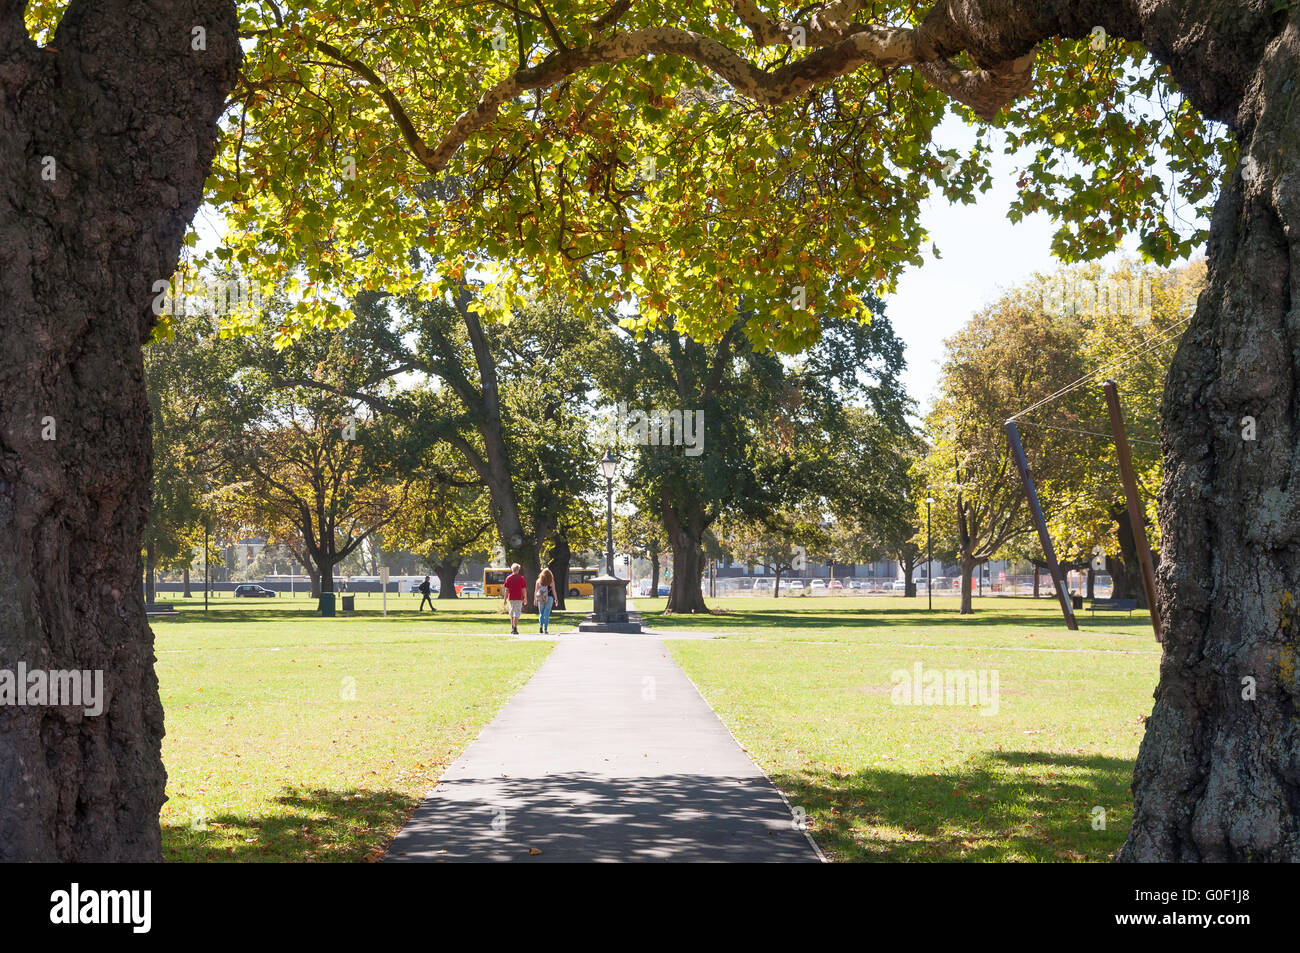 Latimer Square, Hereford Street, Christchurch, Canterbury, New Zealand - Stock Image